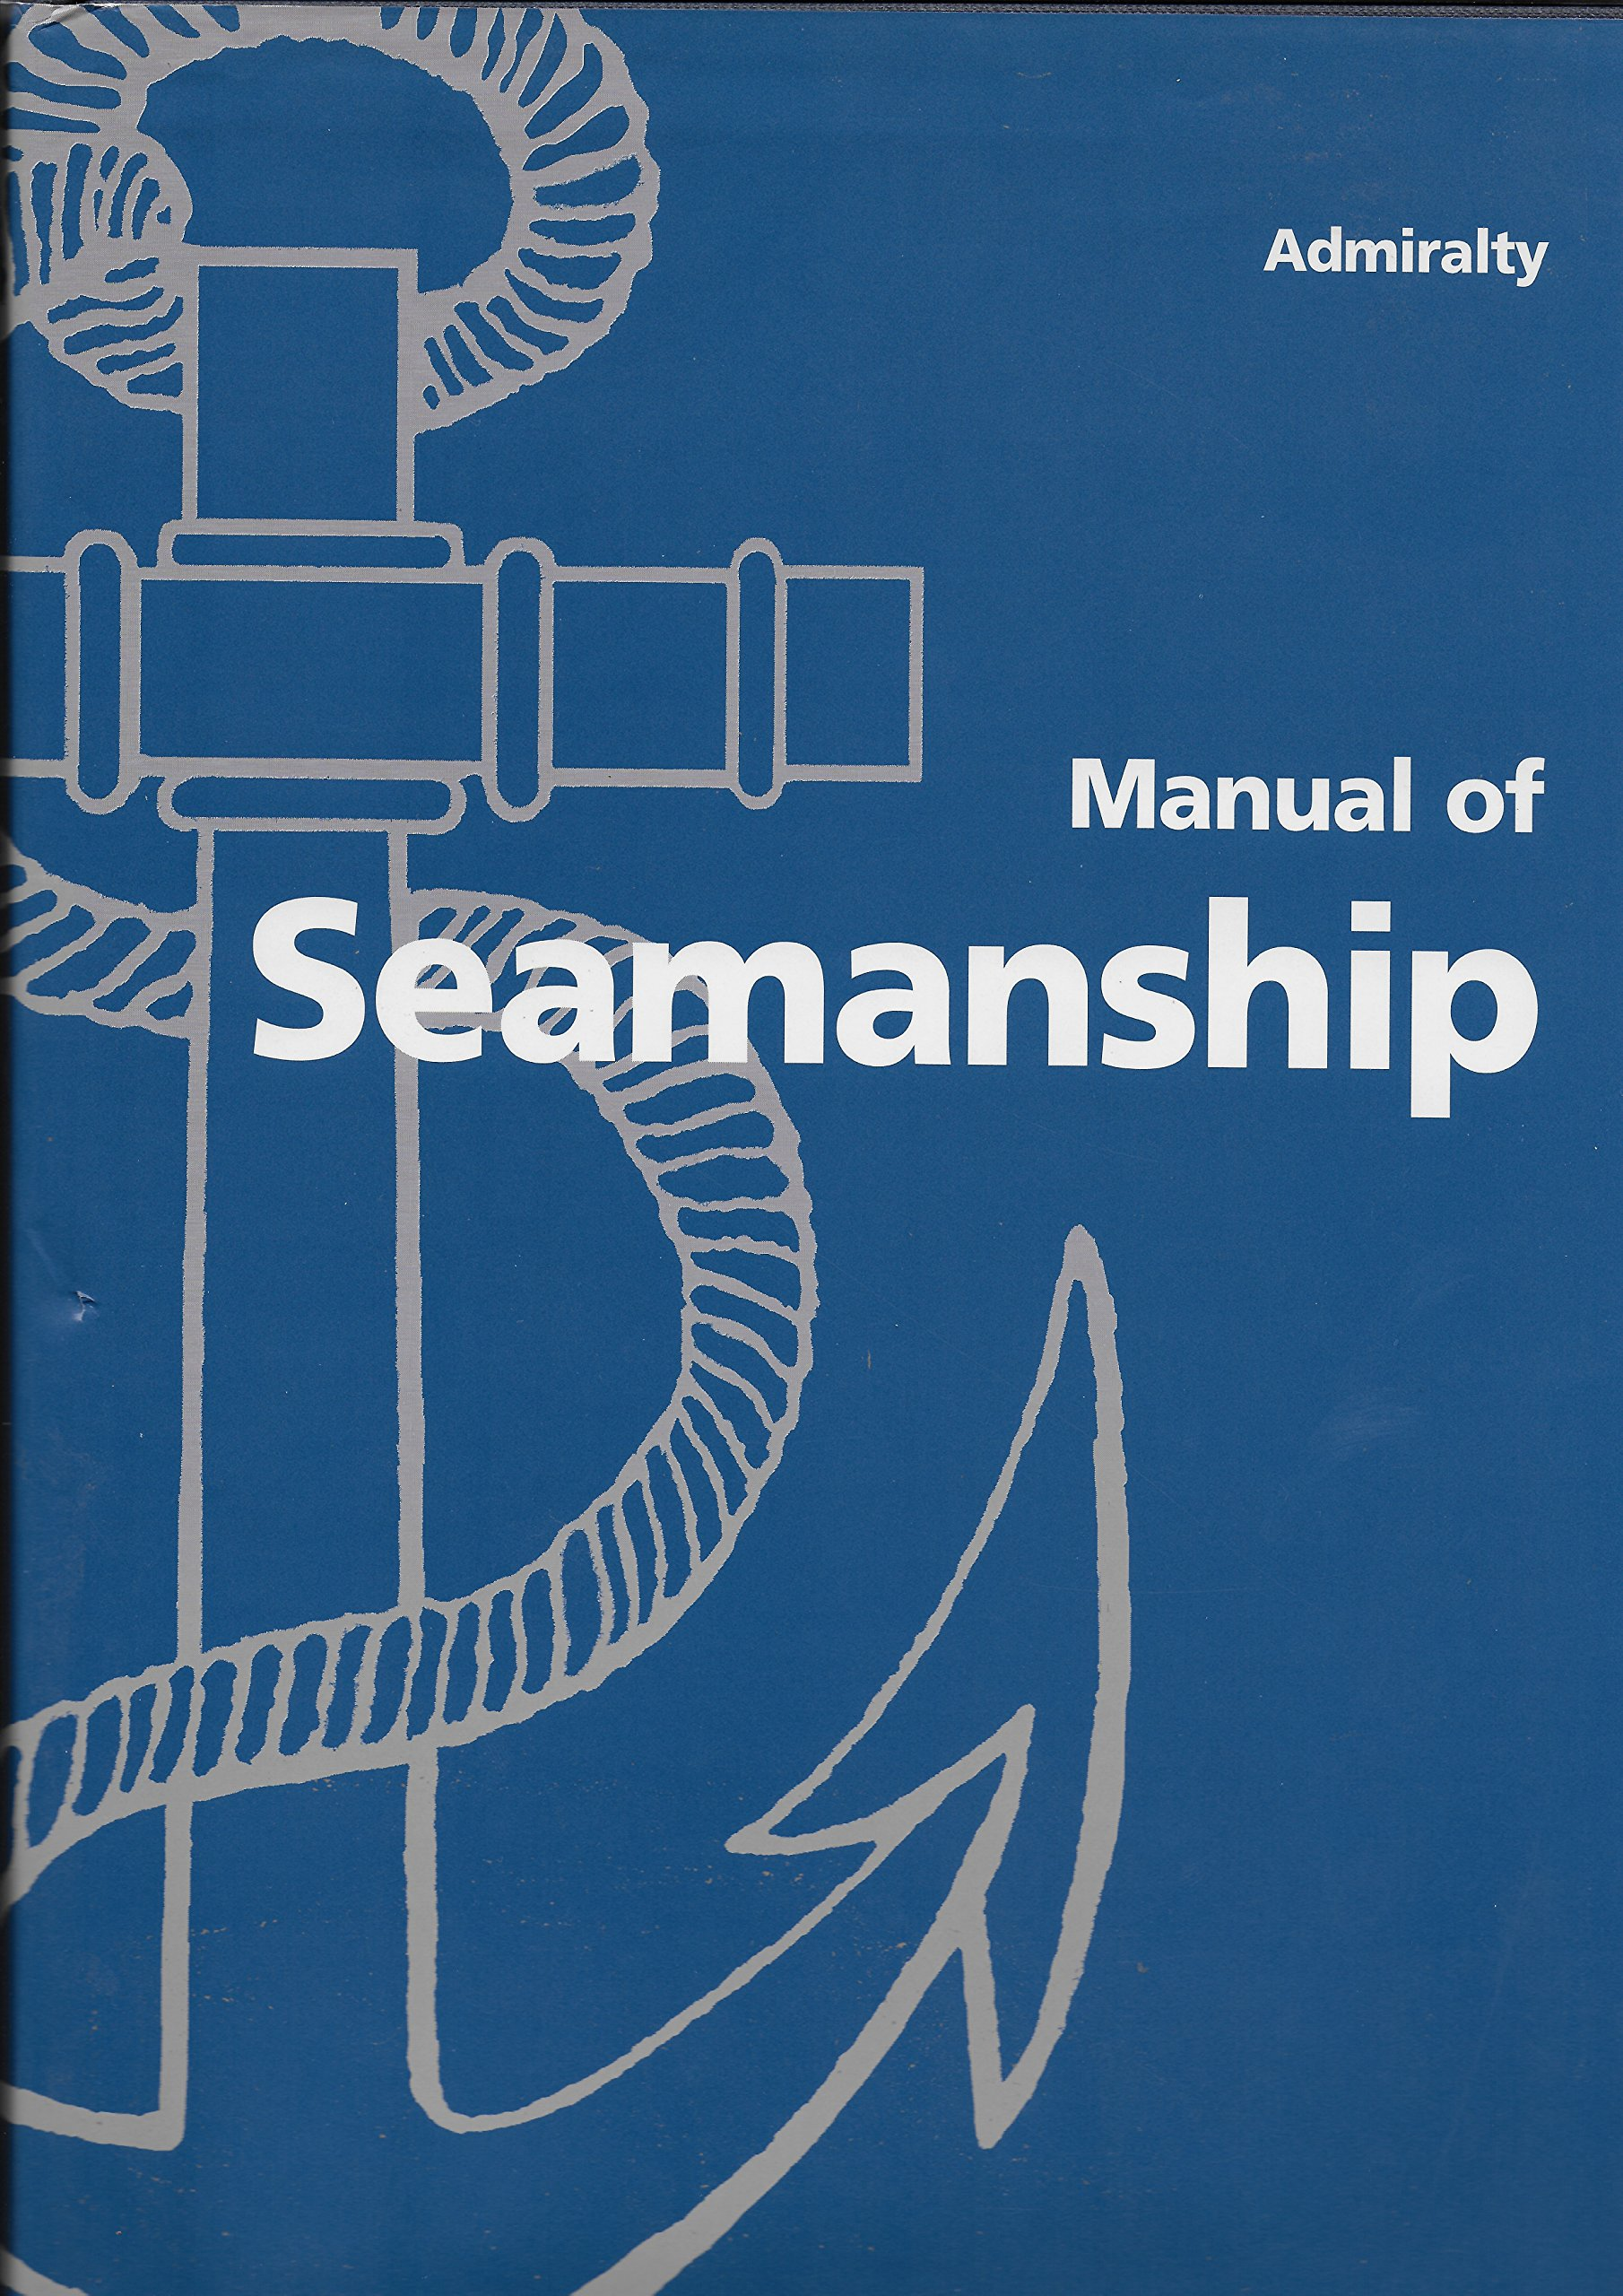 Admiralty Manual of Seamanship (BR): Amazon.co.uk: Ministry of Defence  (Navy): 9780117726963: Books